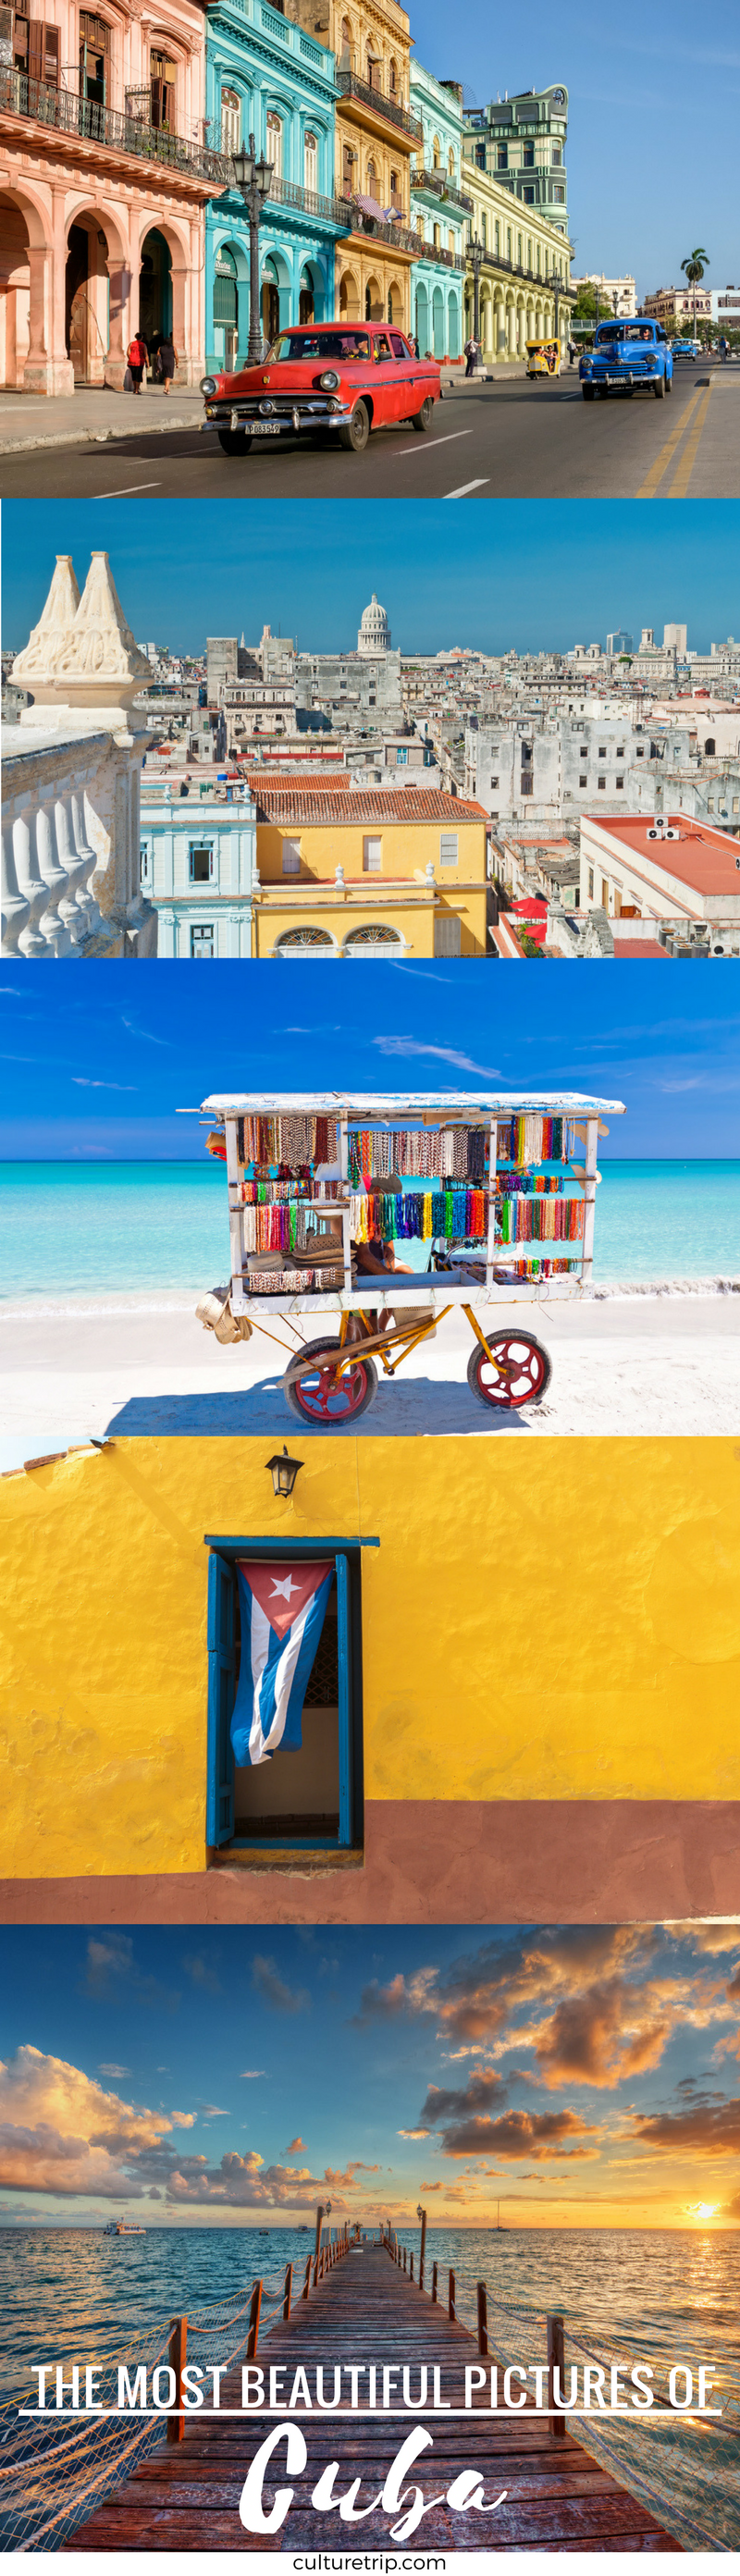 These AMAZING Photos Of Cuba Will Give You Severe Wanderlust #historyofcuba